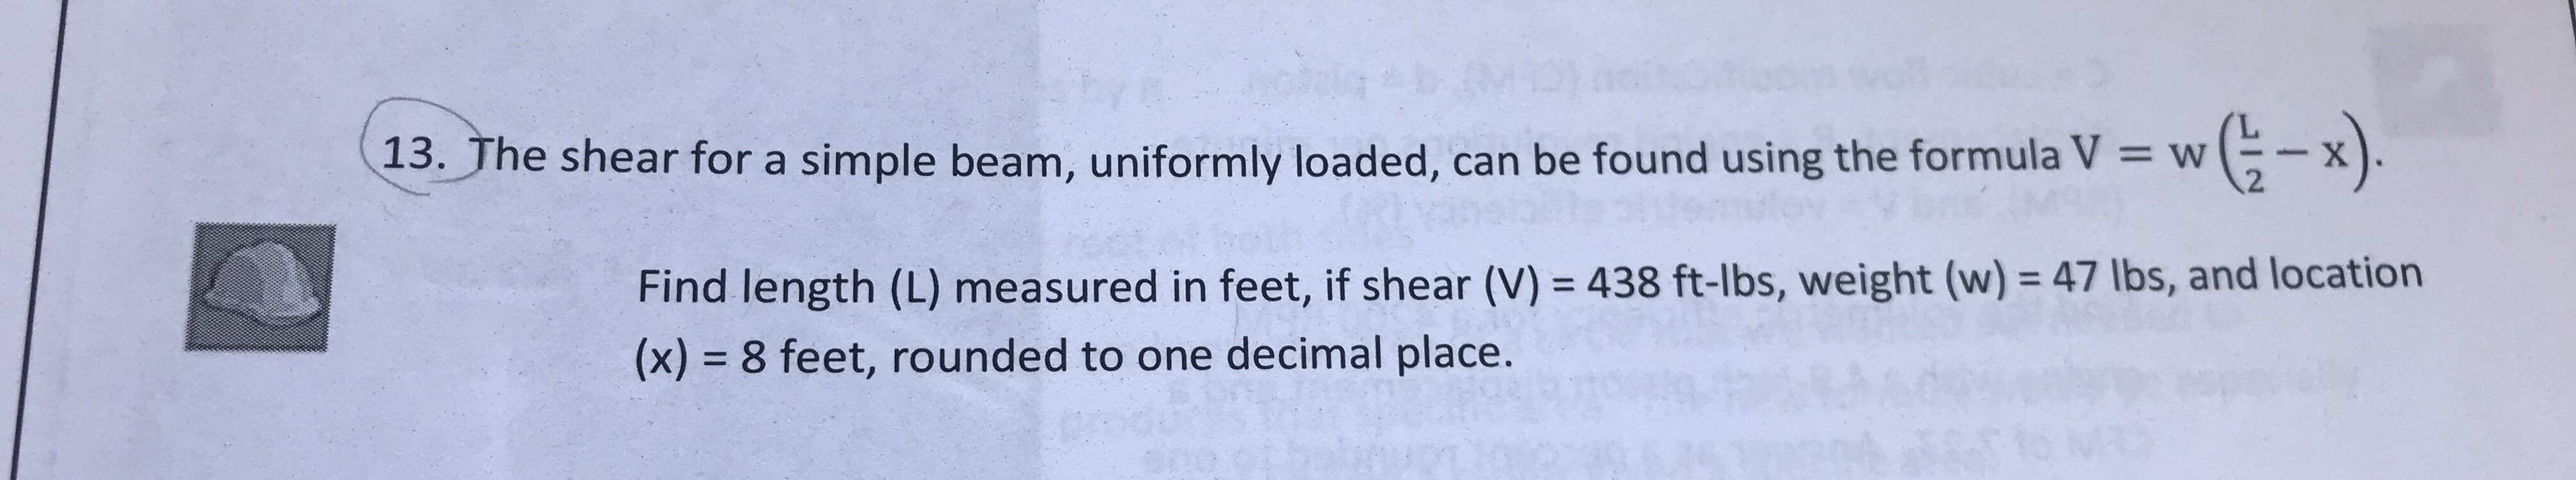 (13. The shear for a simple beam, uniformly loaded, can be found using the formula V 13. The shear for a simple beam, uniformly loaded, can be found using the formula V x w ( -x 2 Find length (L) measured in feet, if shear (V) 438 ft-lbs, weight (w)- 47 lbs, and location (x) 8 feet, rounded to one decimal place.